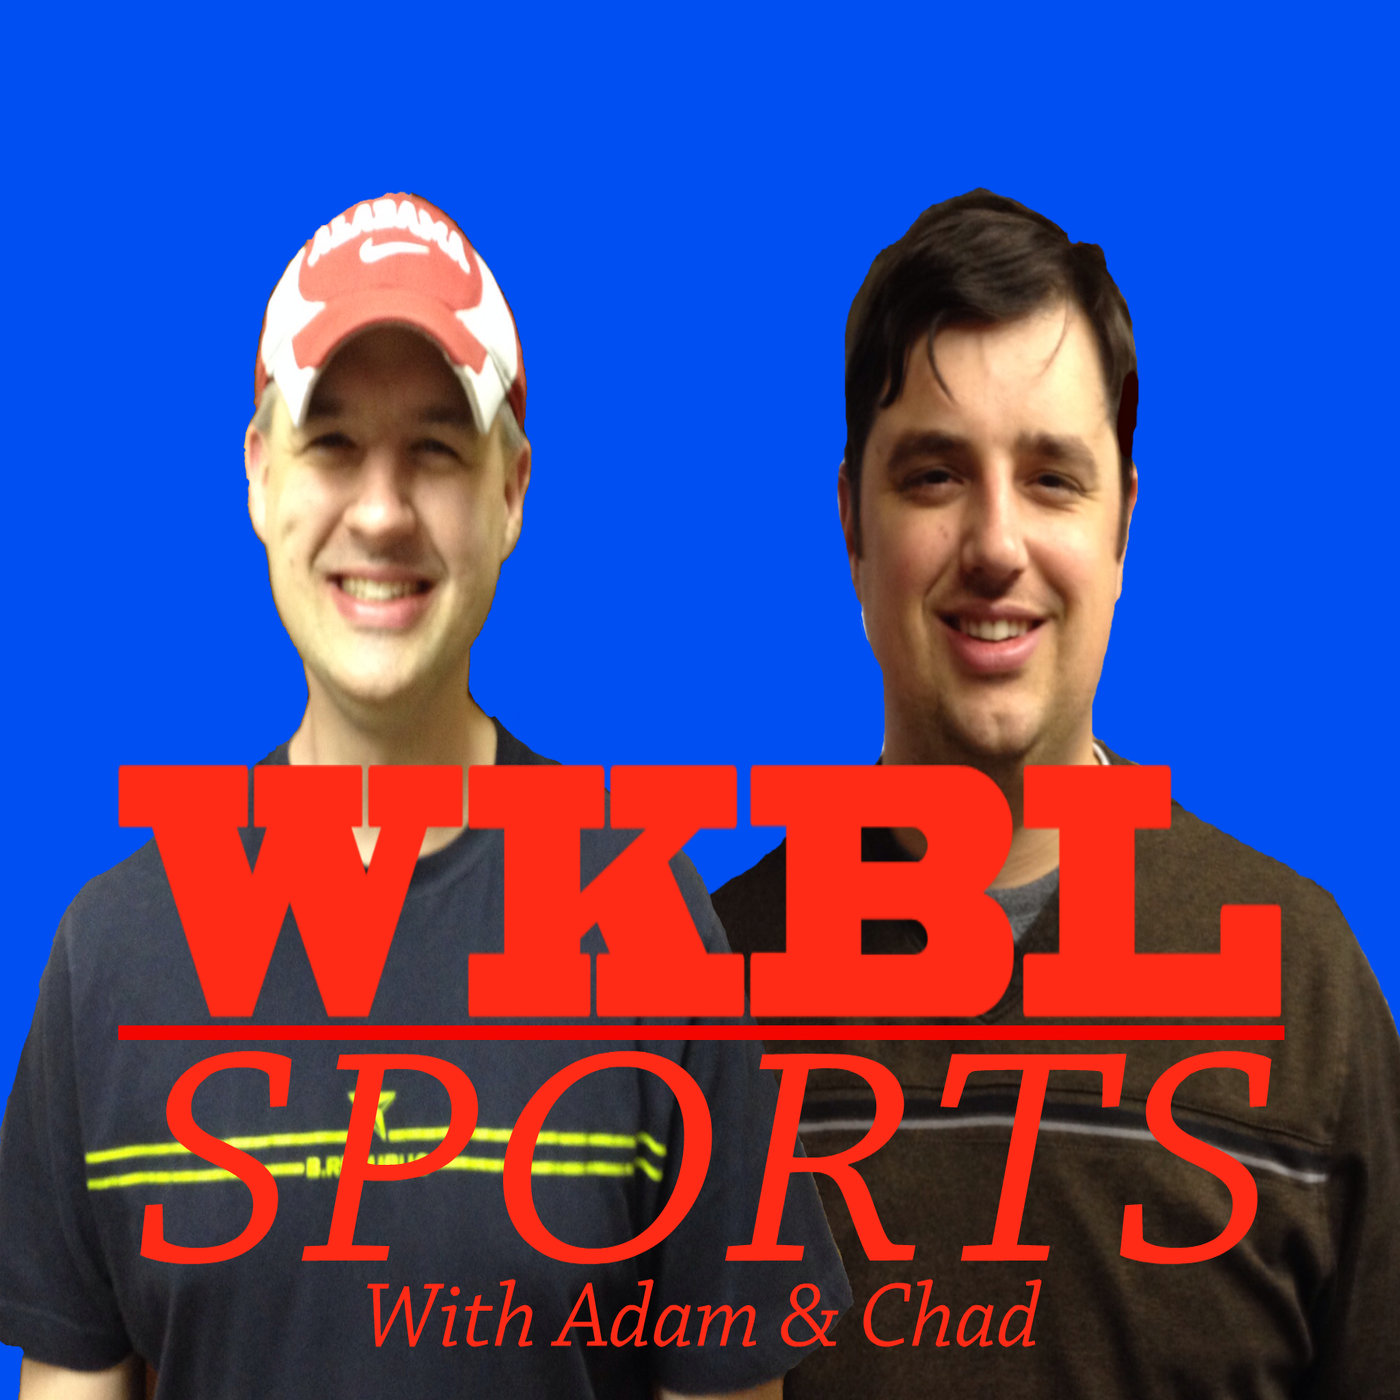 WKBL Sports with Adam & Chad